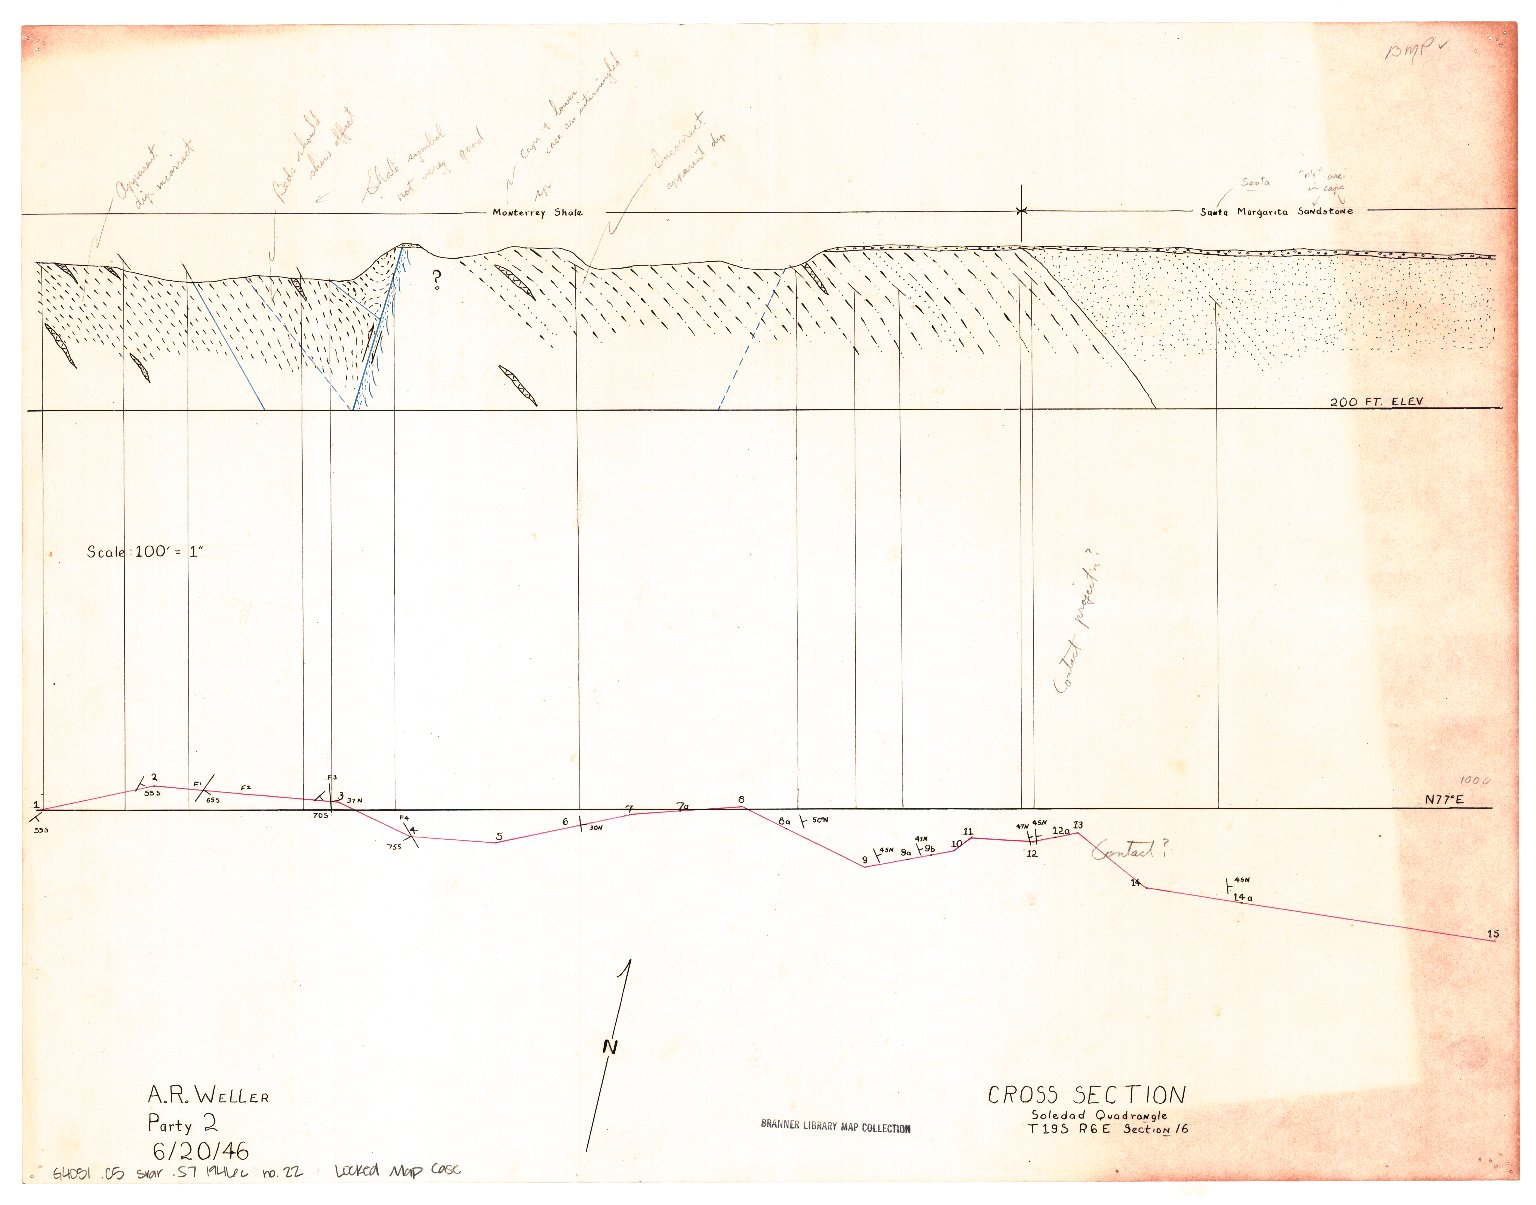 Geologic map of the Arroyo Seco area